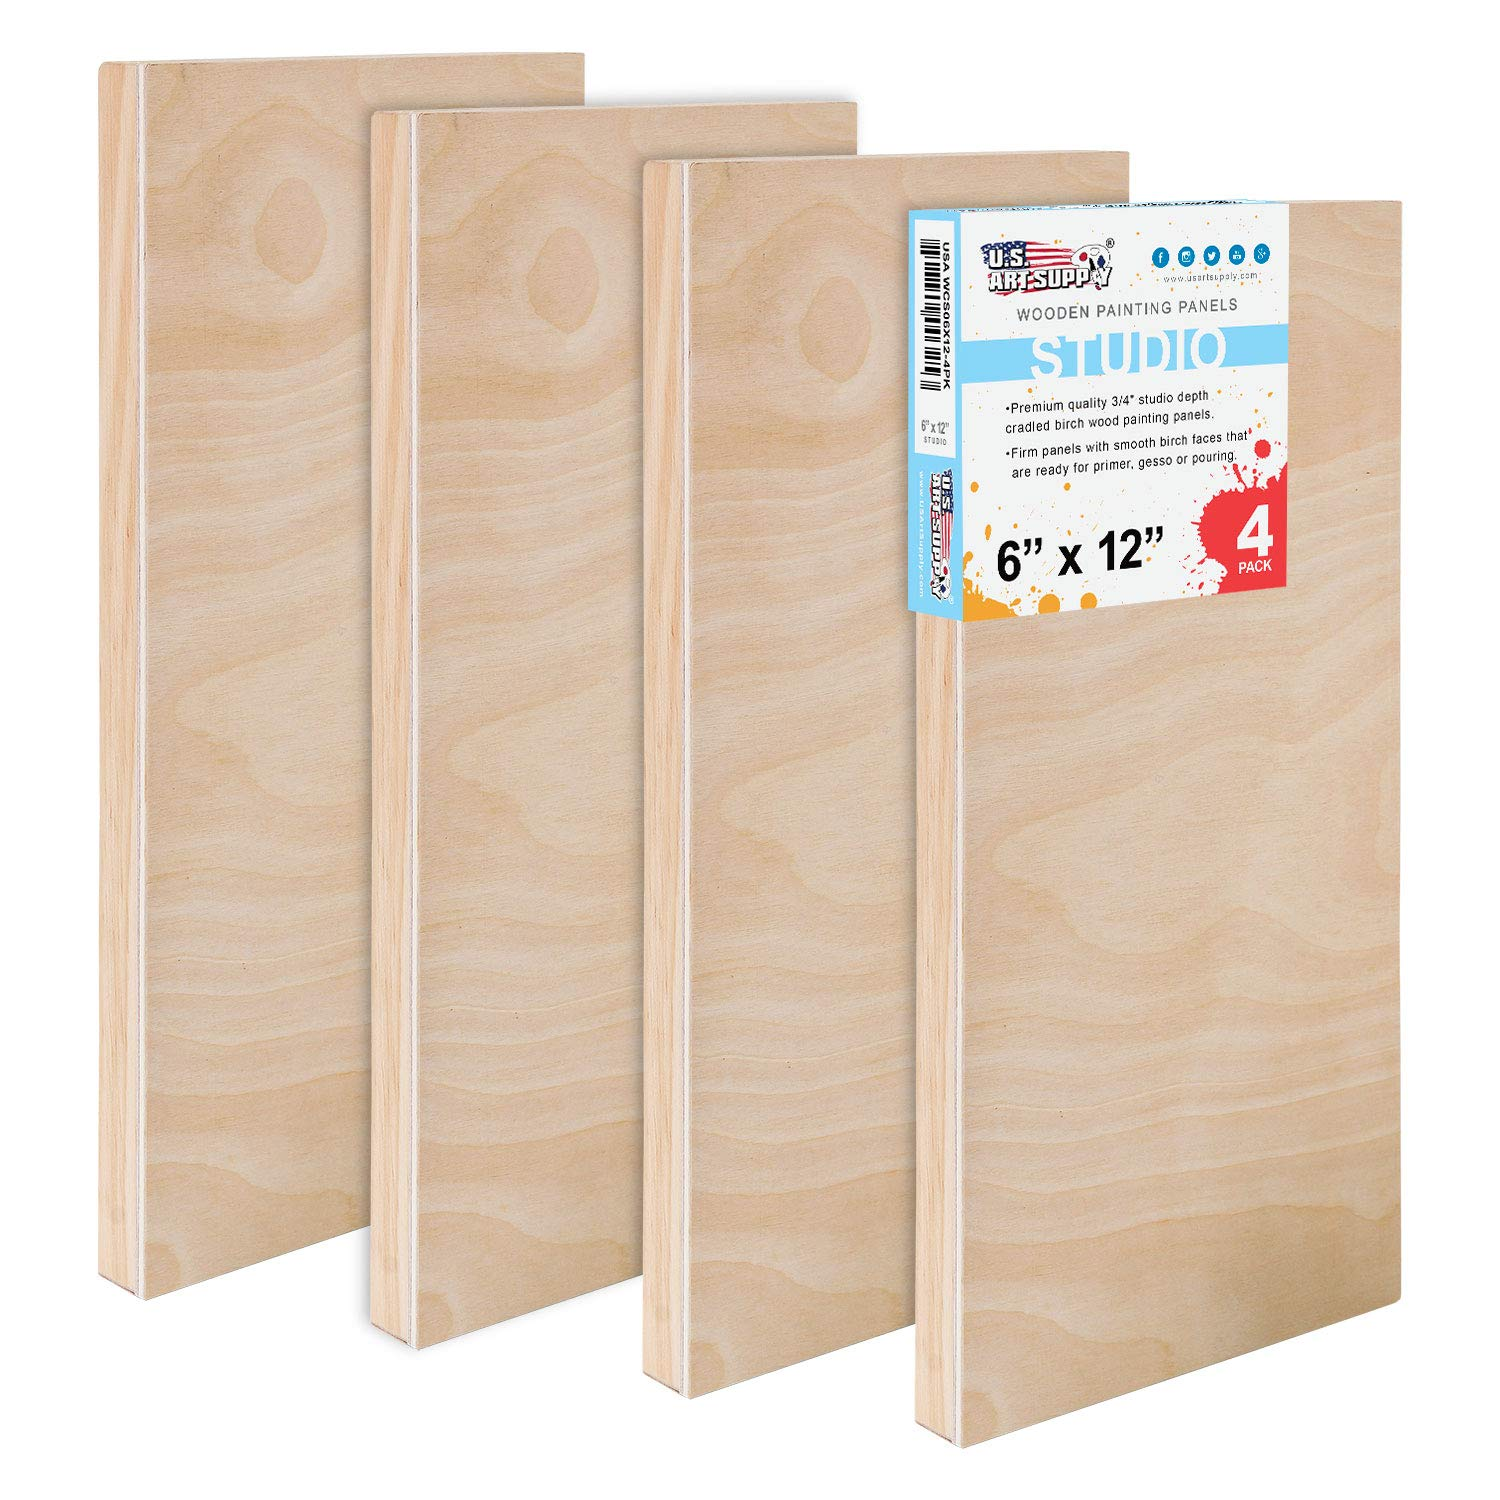 U.S. Art Supply 6'' x 12'' Birch Wood Paint Pouring Panel Boards, Studio 3/4'' Deep Cradle (Pack of 4) - Artist Wooden Wall Canvases - Painting Mixed-Media Craft, Acrylic, Oil, Watercolor, Encaustic